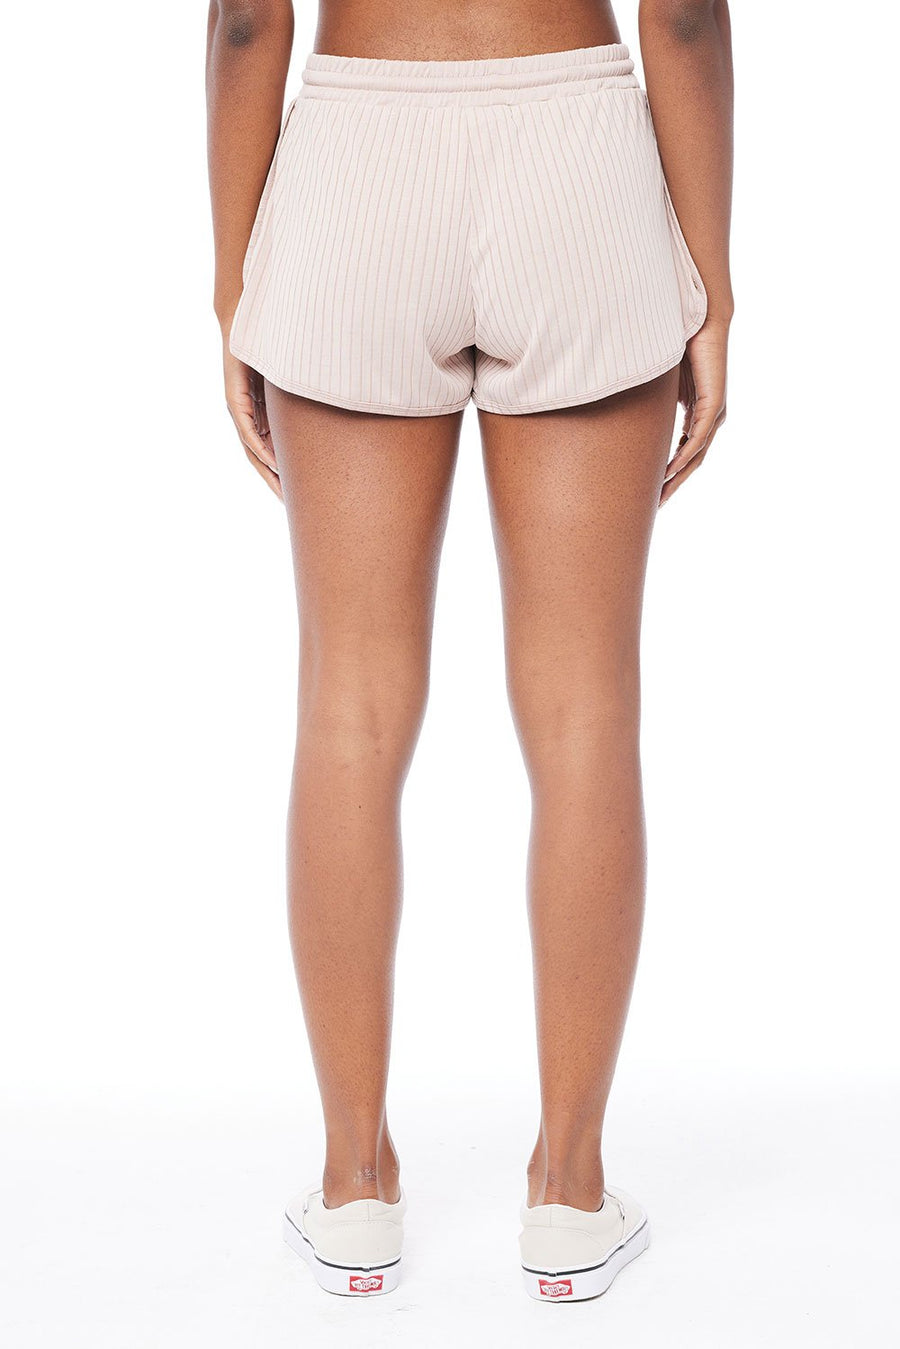 Saltwater Luxe Lounge Shorts in Petal